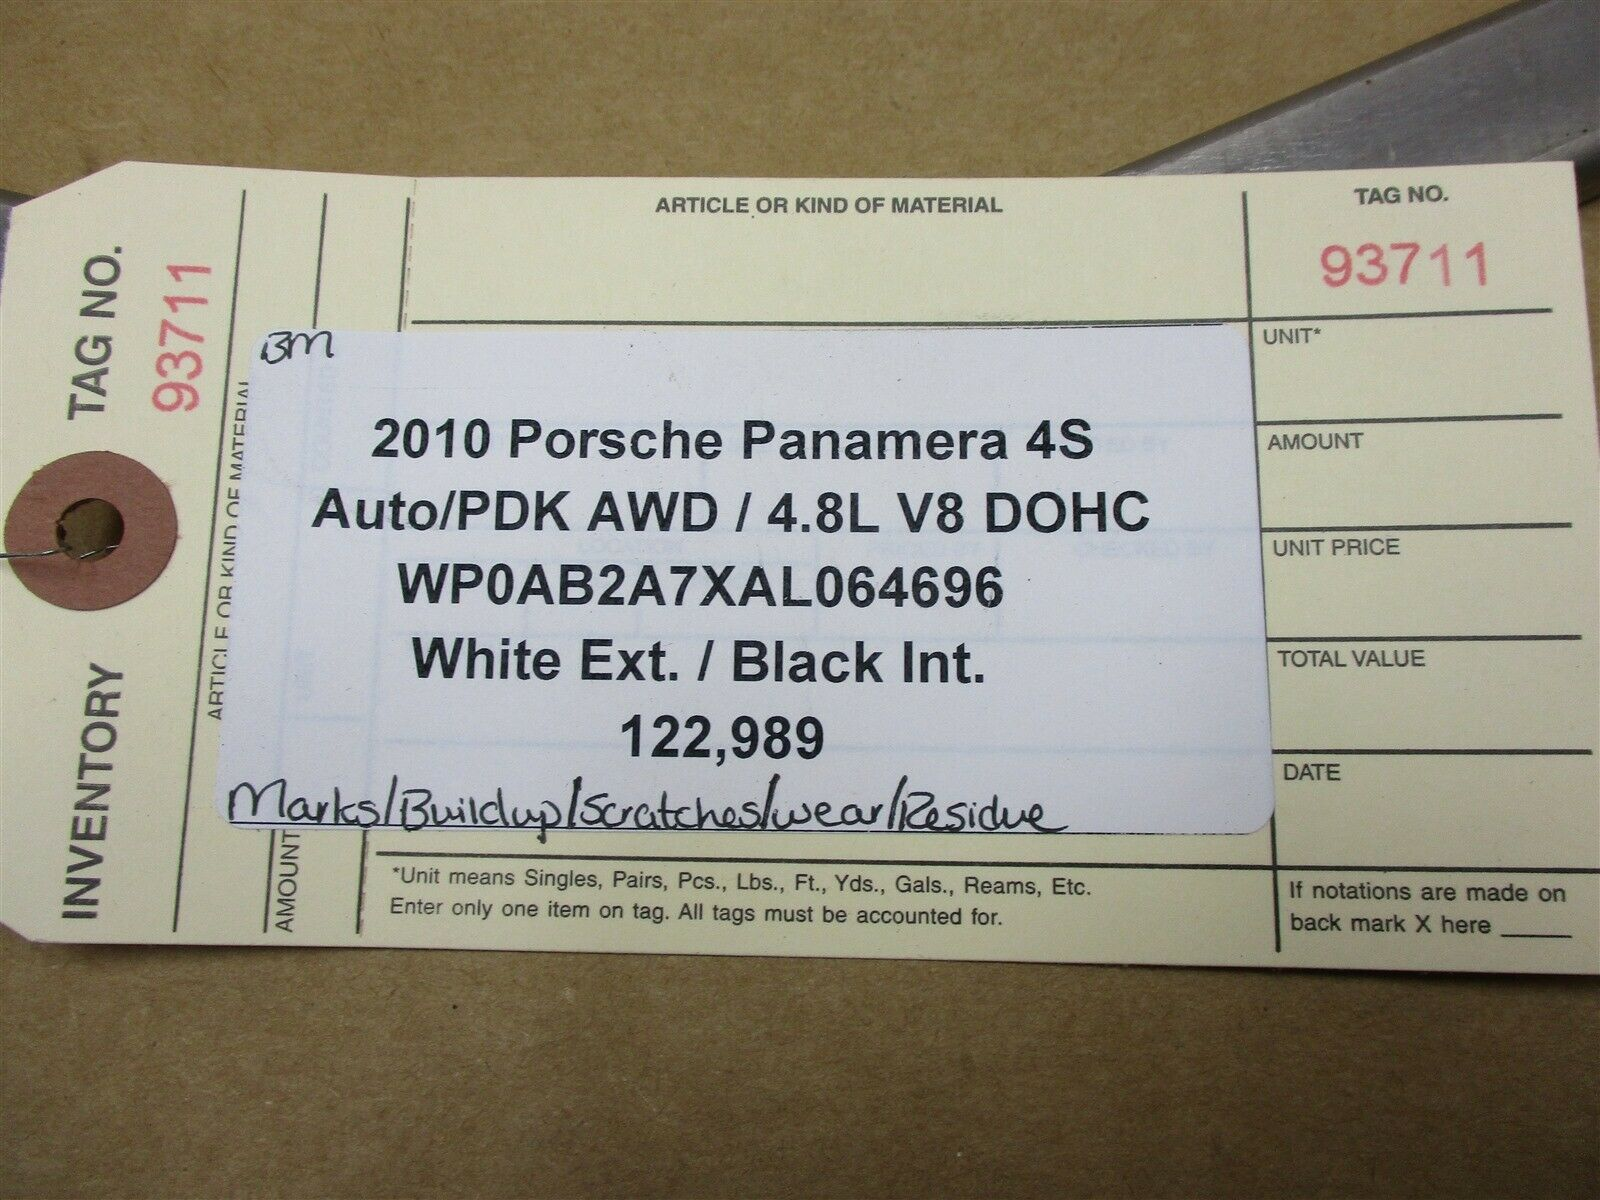 10 Panamera 4S AWD 970 Porsche SUSPENSION BRACKET 122,989